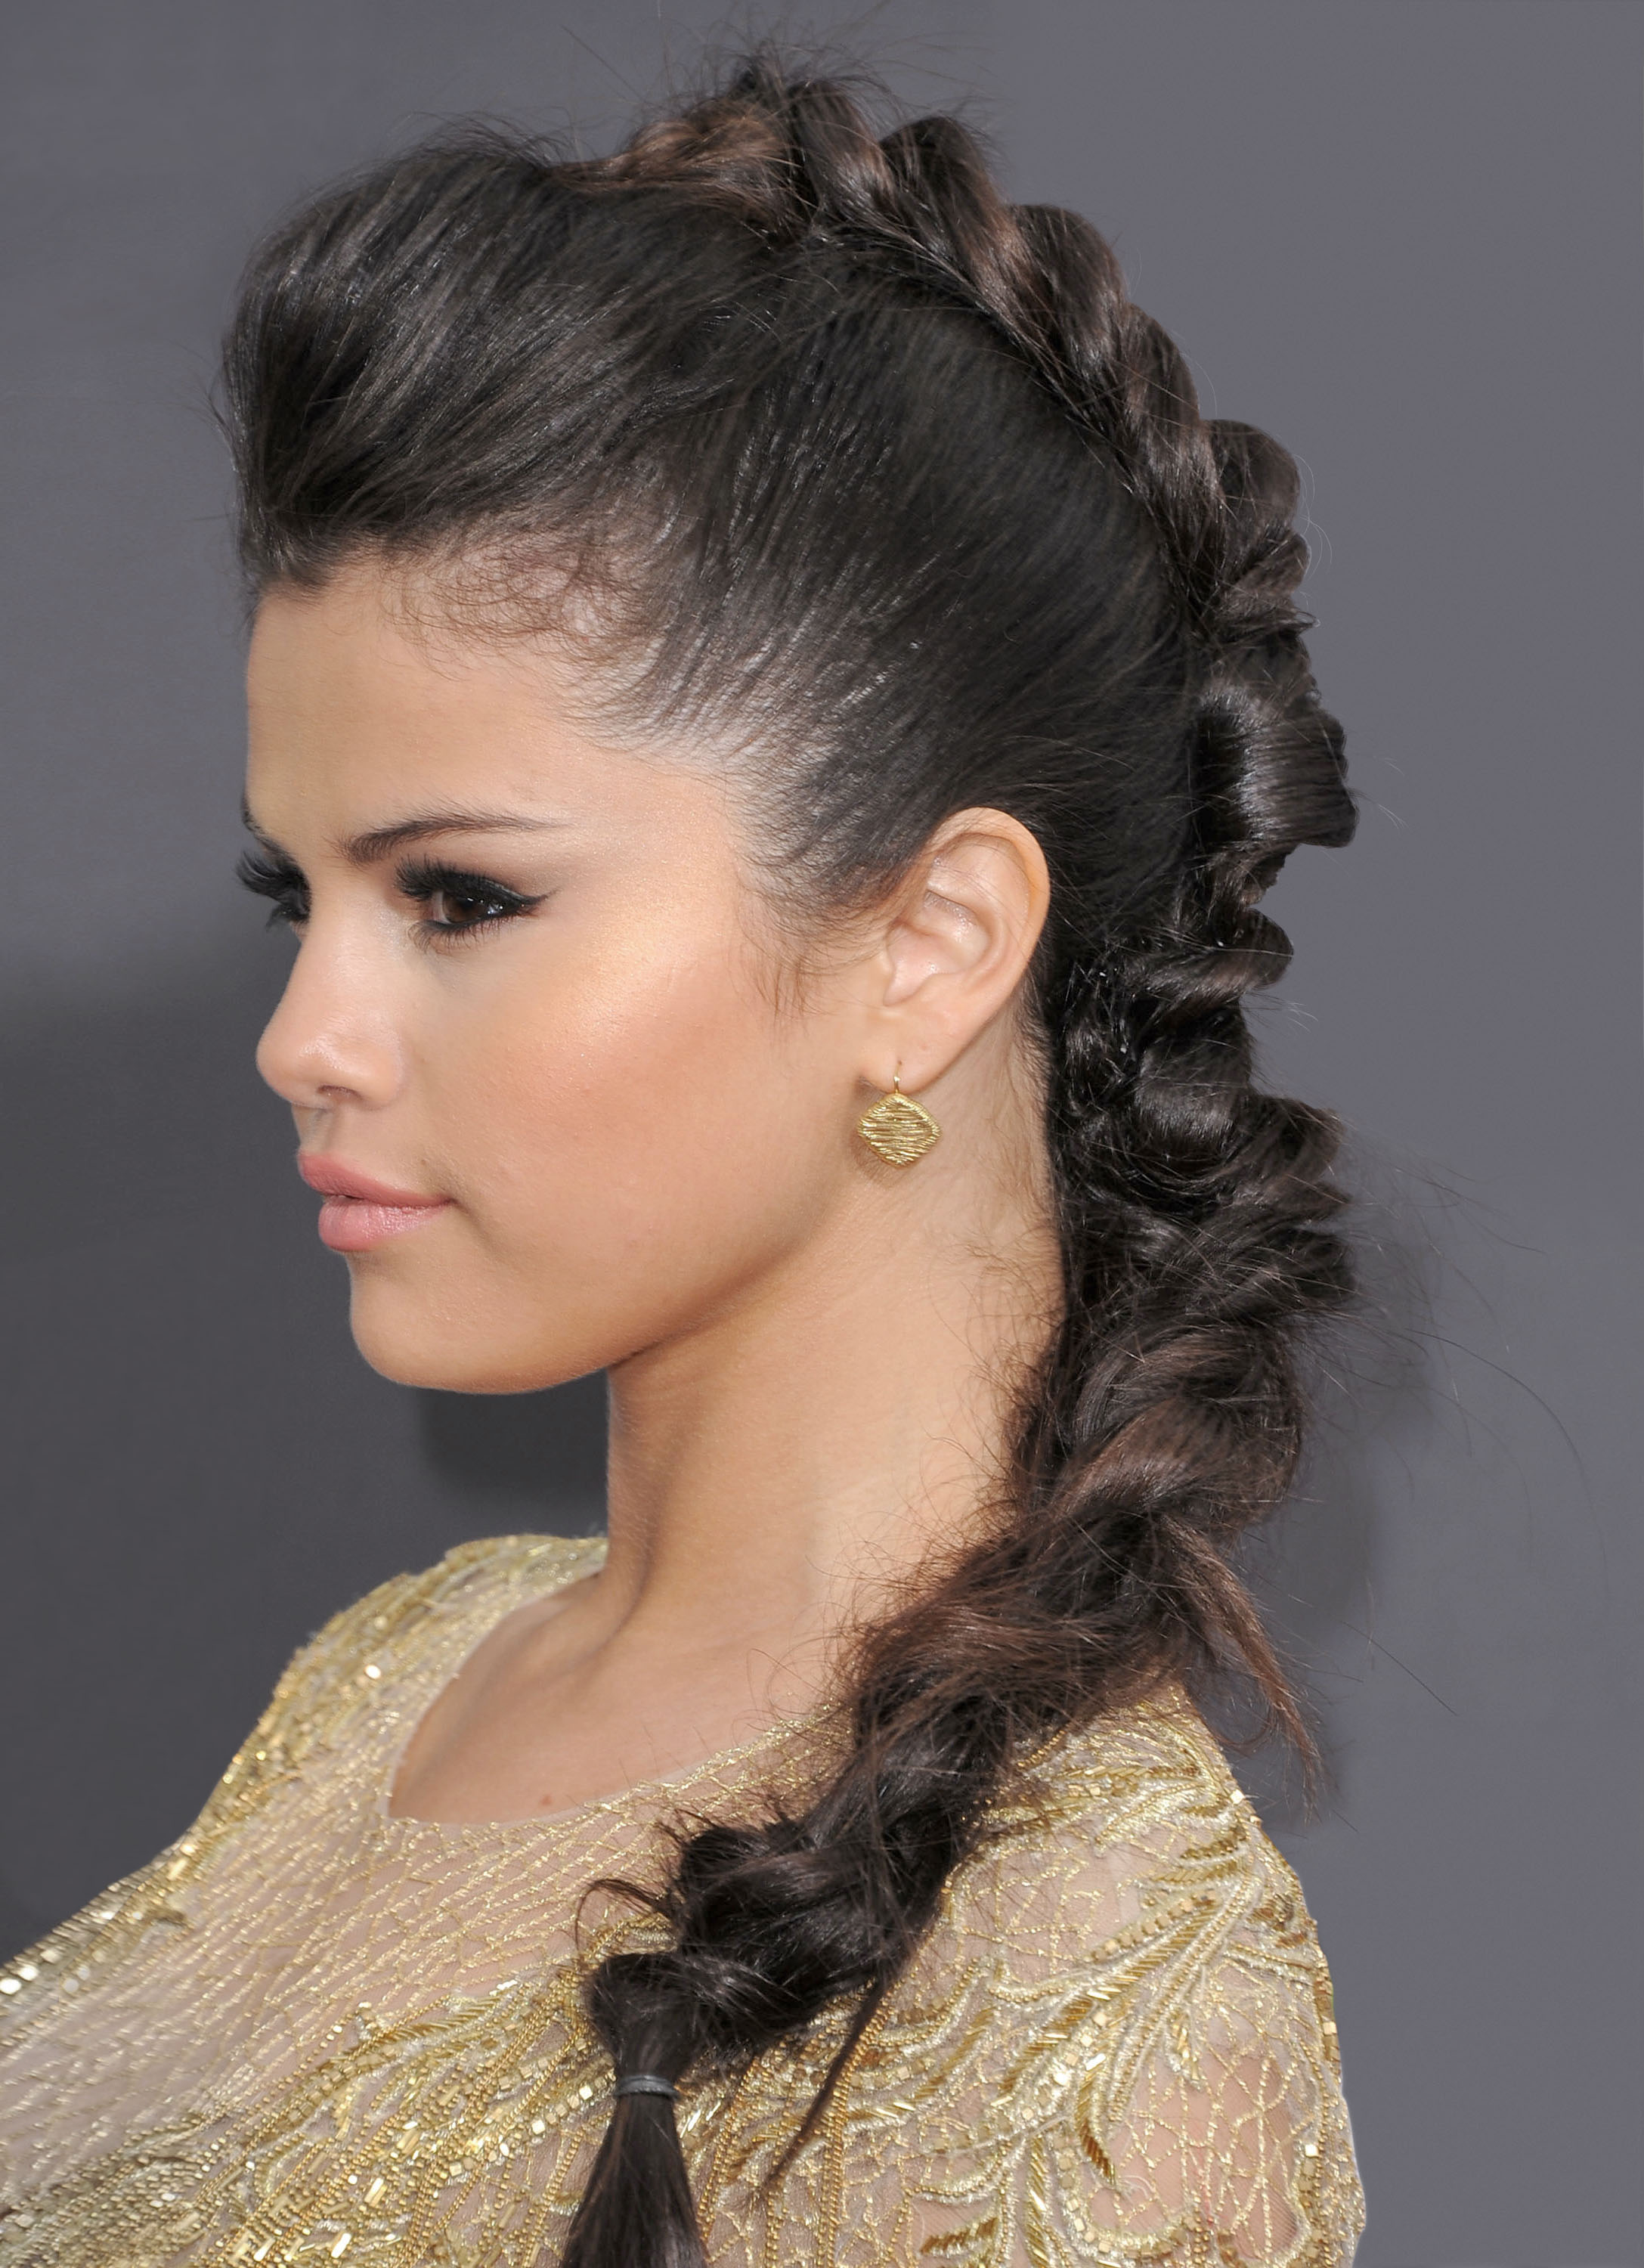 hair styles tutorials best braid tutorials braid hairstyles 2289 | 54e846bb7adef sev august 2013 selena de